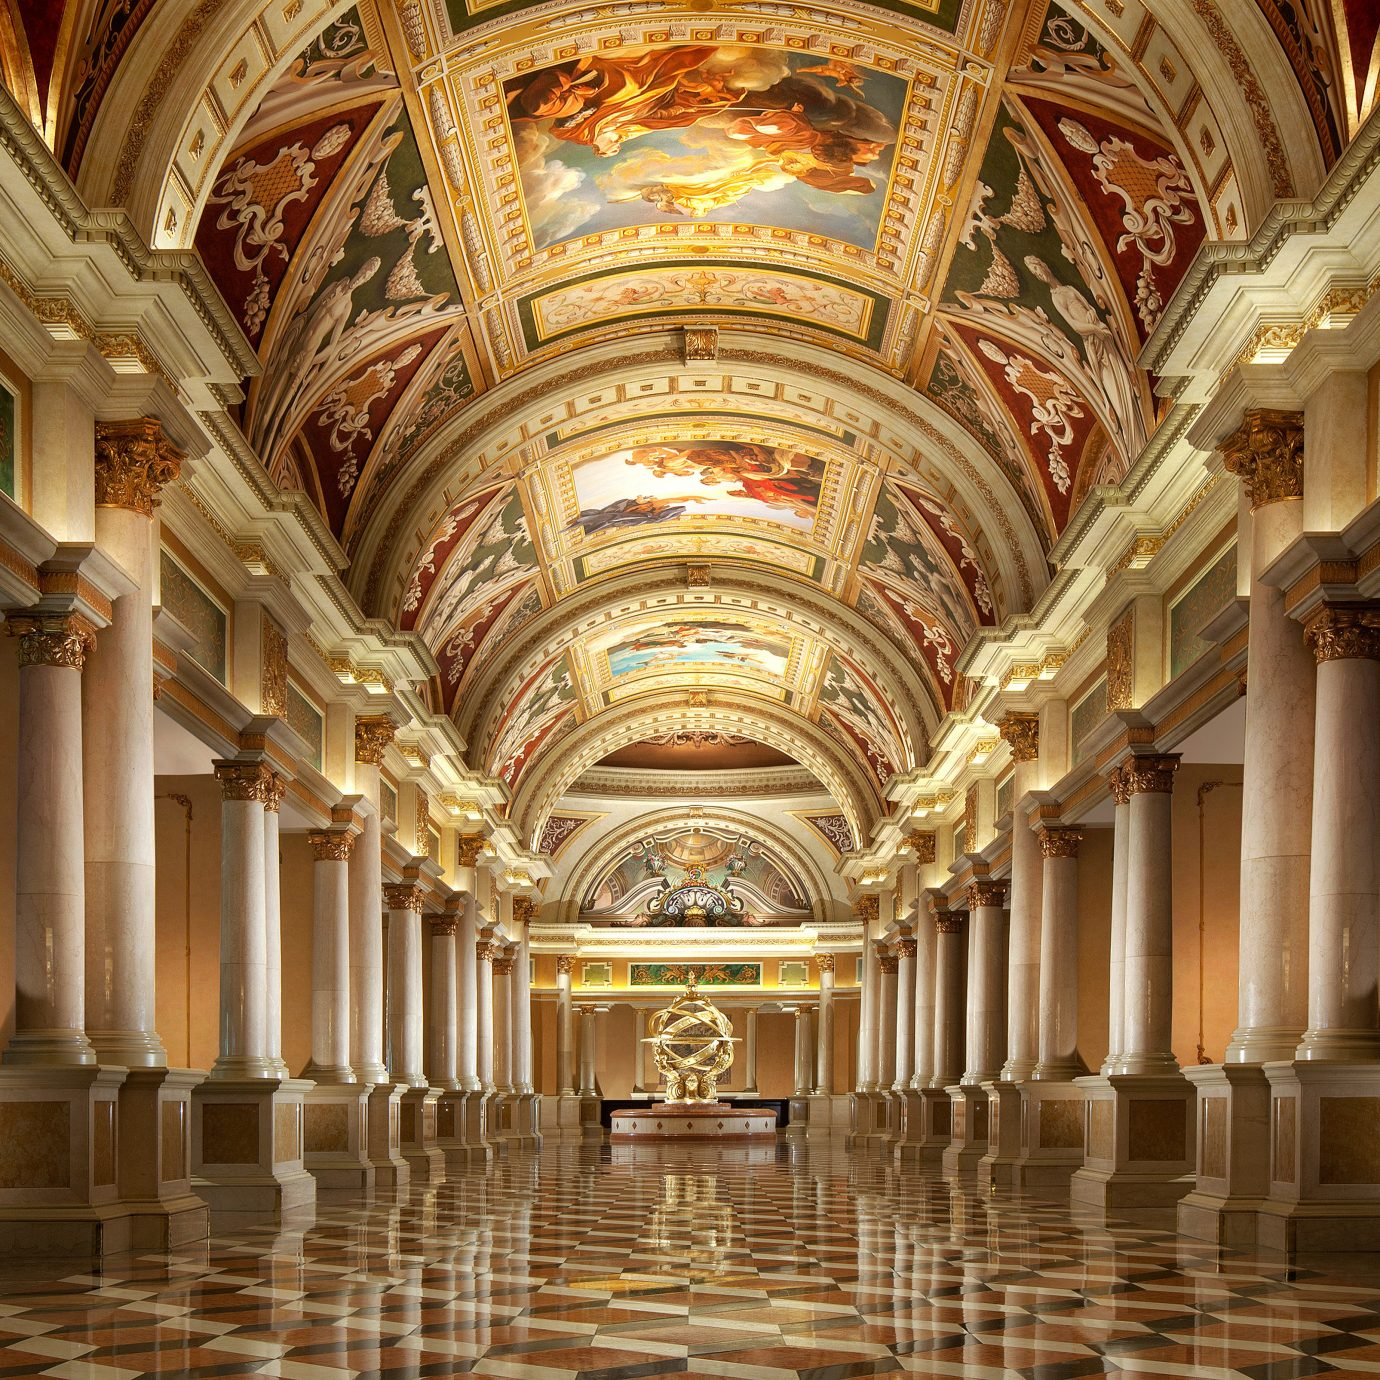 Architecture Buildings Luxury Resort building place of worship Church basilica palace cathedral chapel ballroom opera house synagogue colonnade